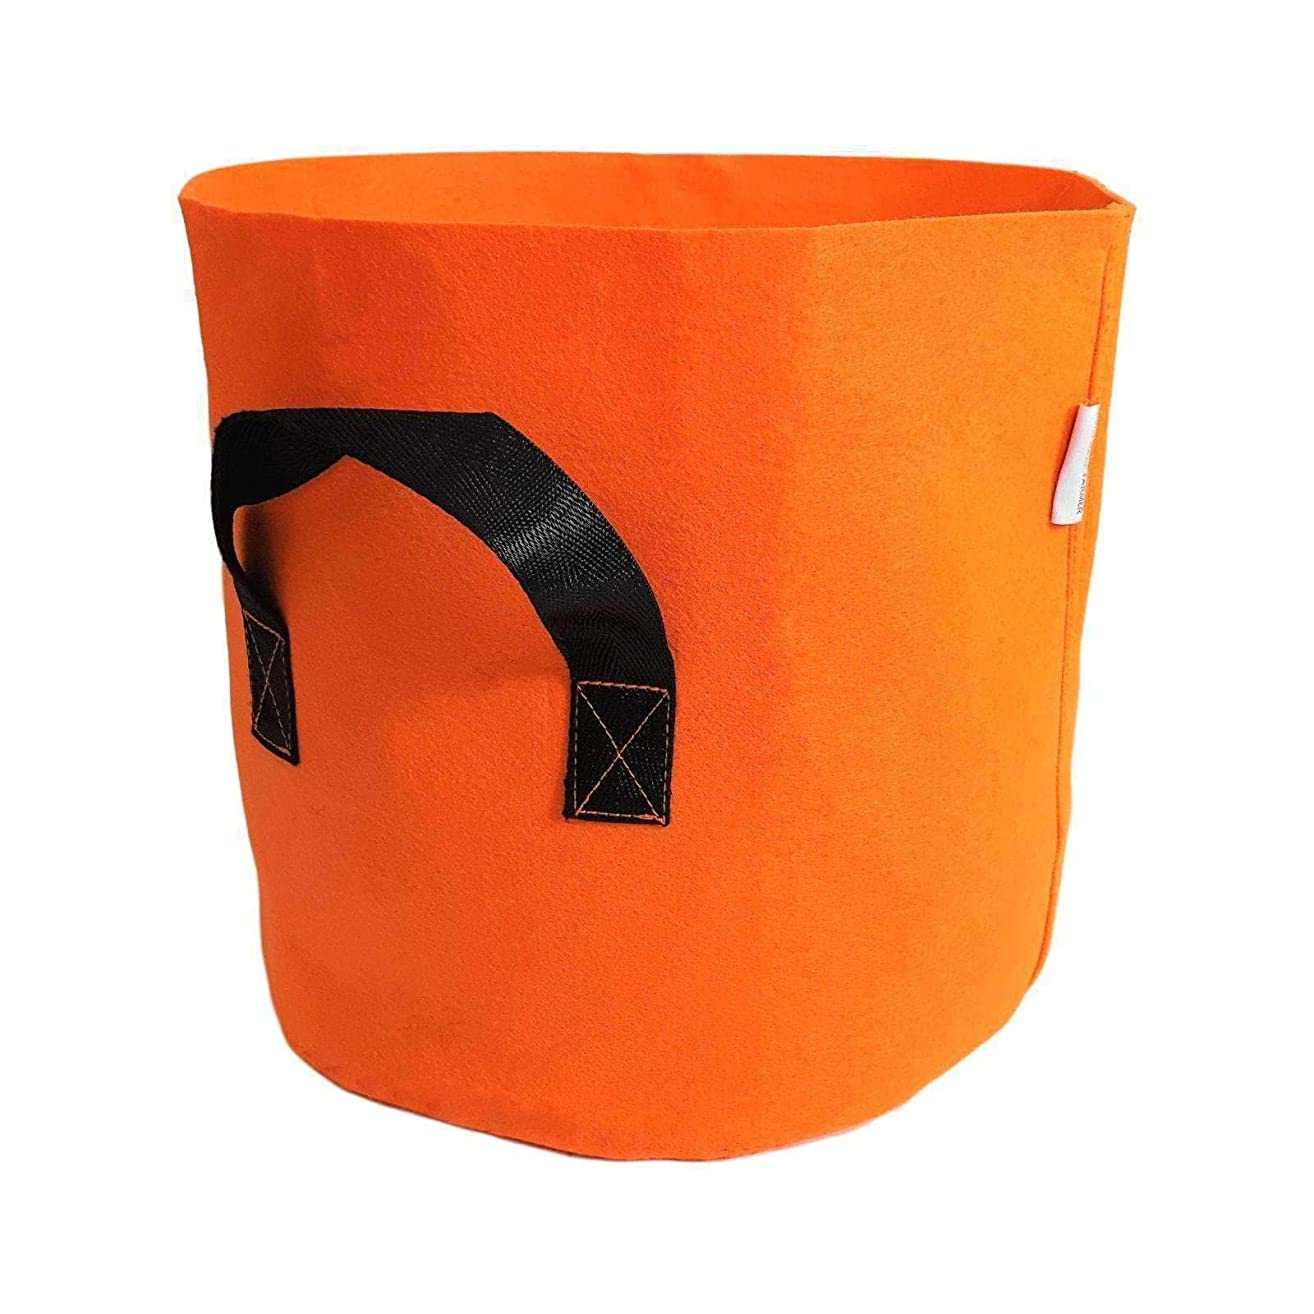 Bootstrap Farmer Grow Bags 7 Gallon, Orange 10 Pack, Colored Fabric Pot for Peppers, Potatoes, Tomatoes and Plants